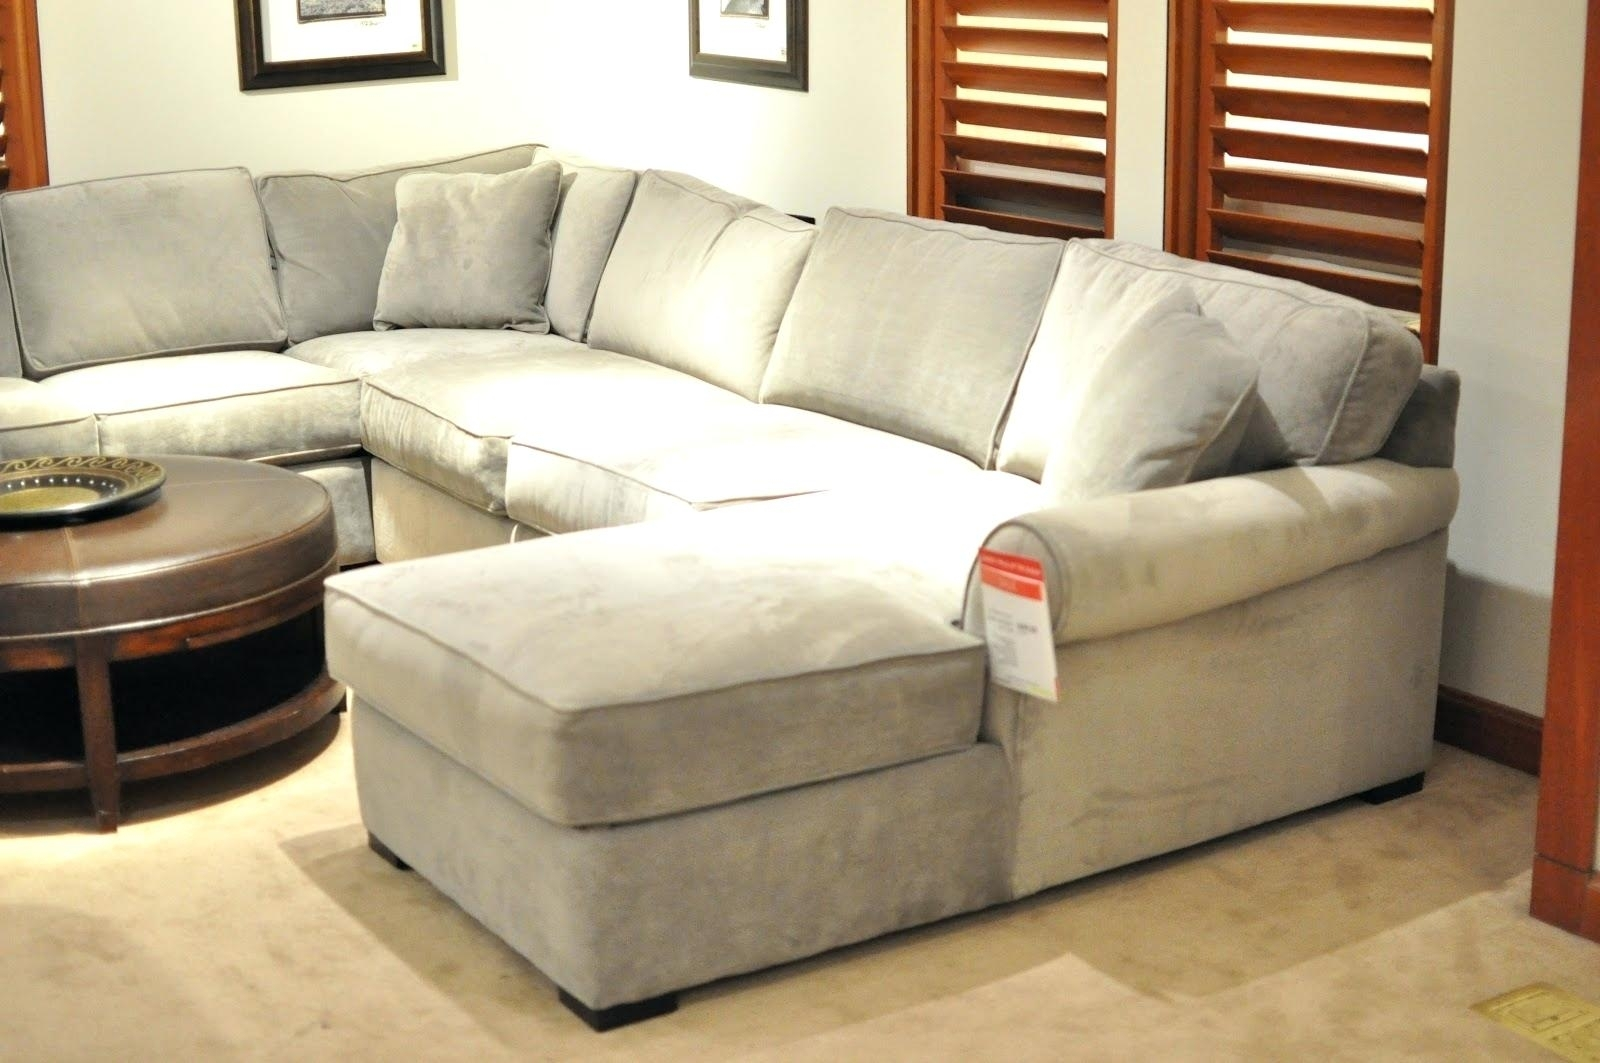 Pottery Barn Sectional Sofas Sofa Covers Turner Leather Reviews Regarding Pottery Barn Sectional Sofas (Image 7 of 10)